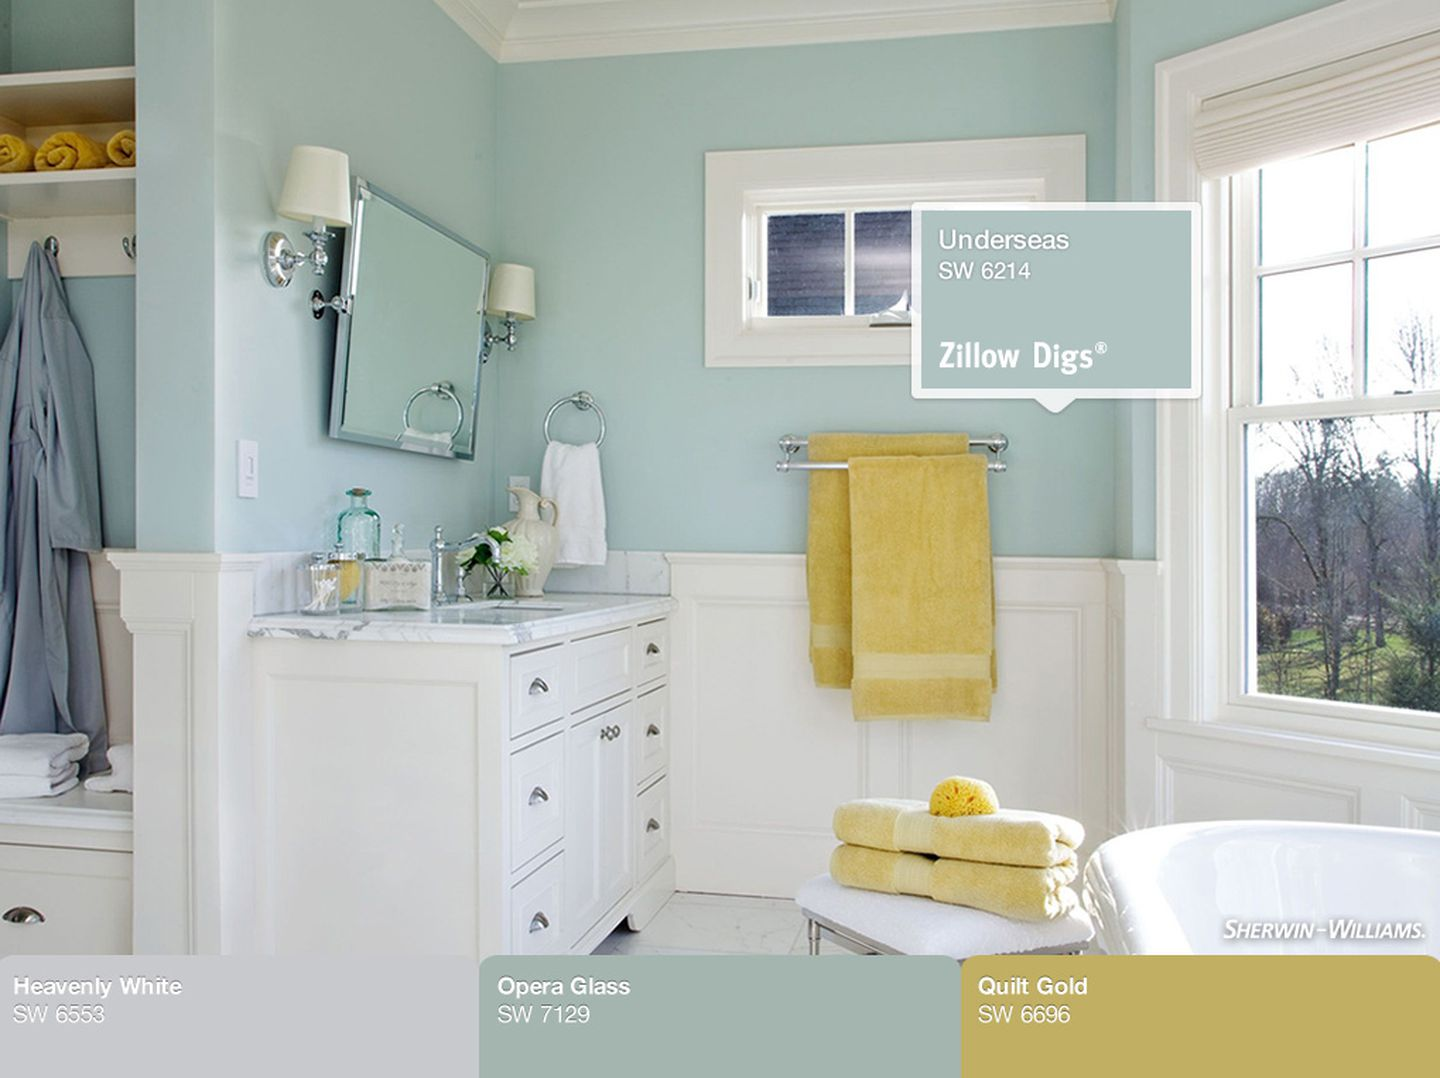 Our favorite home design apps - The Boston Globe on zillow digs fireplaces, zillow digs bathroom, zillow digs dining room,